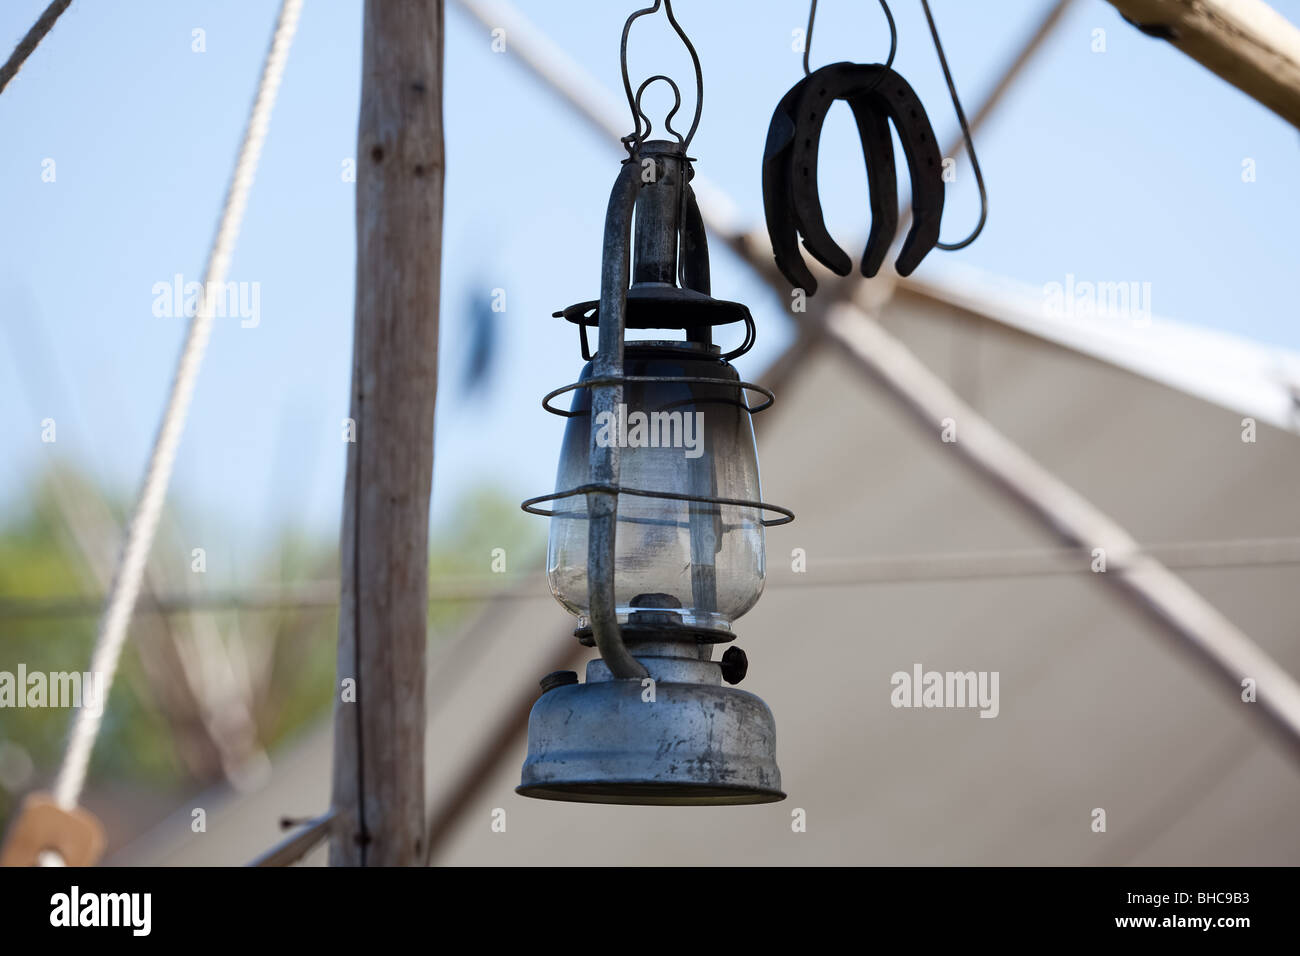 Western oil lamp - Stock Image